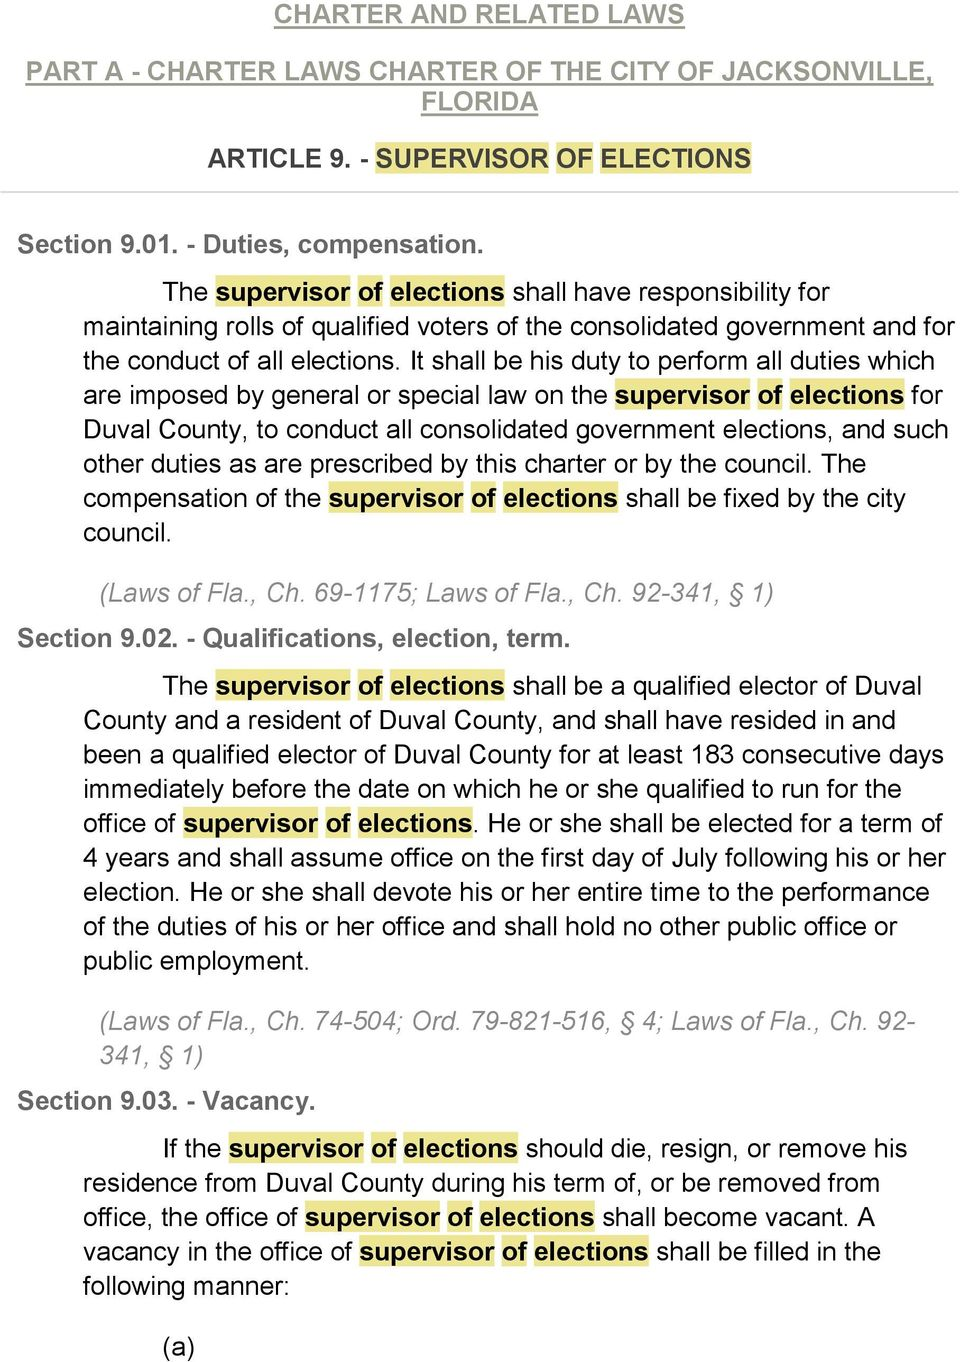 It shall be his duty to perform all duties which are imposed by general or special law on the supervisor of elections for Duval County, to conduct all consolidated government elections, and such